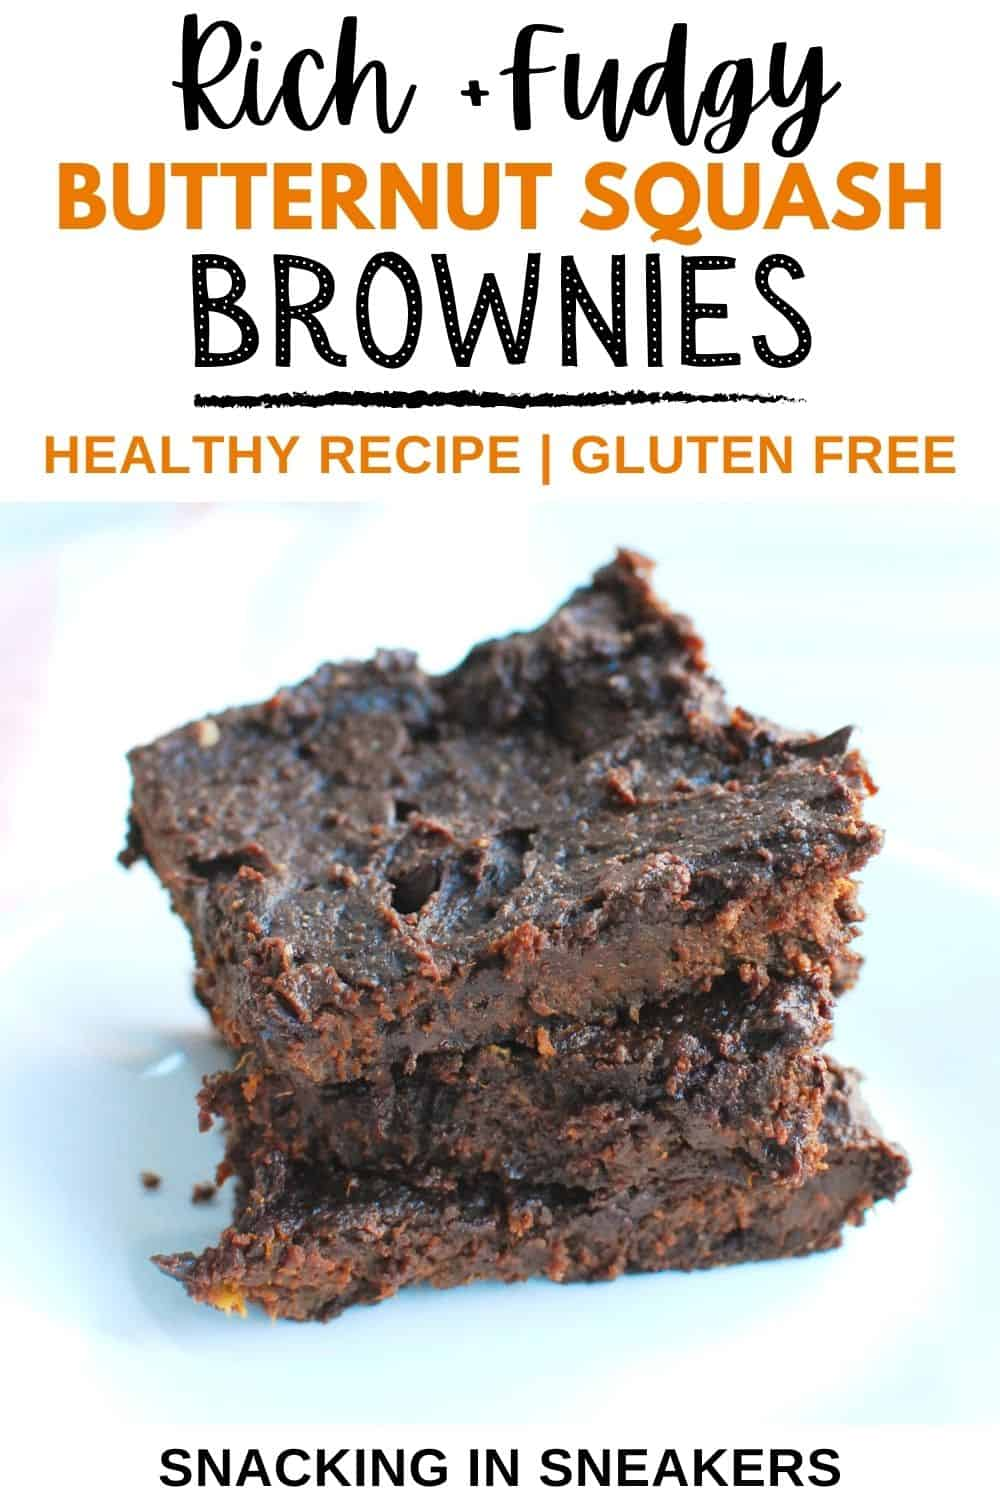 Butternut squash brownies on a white plate with a text overlay.